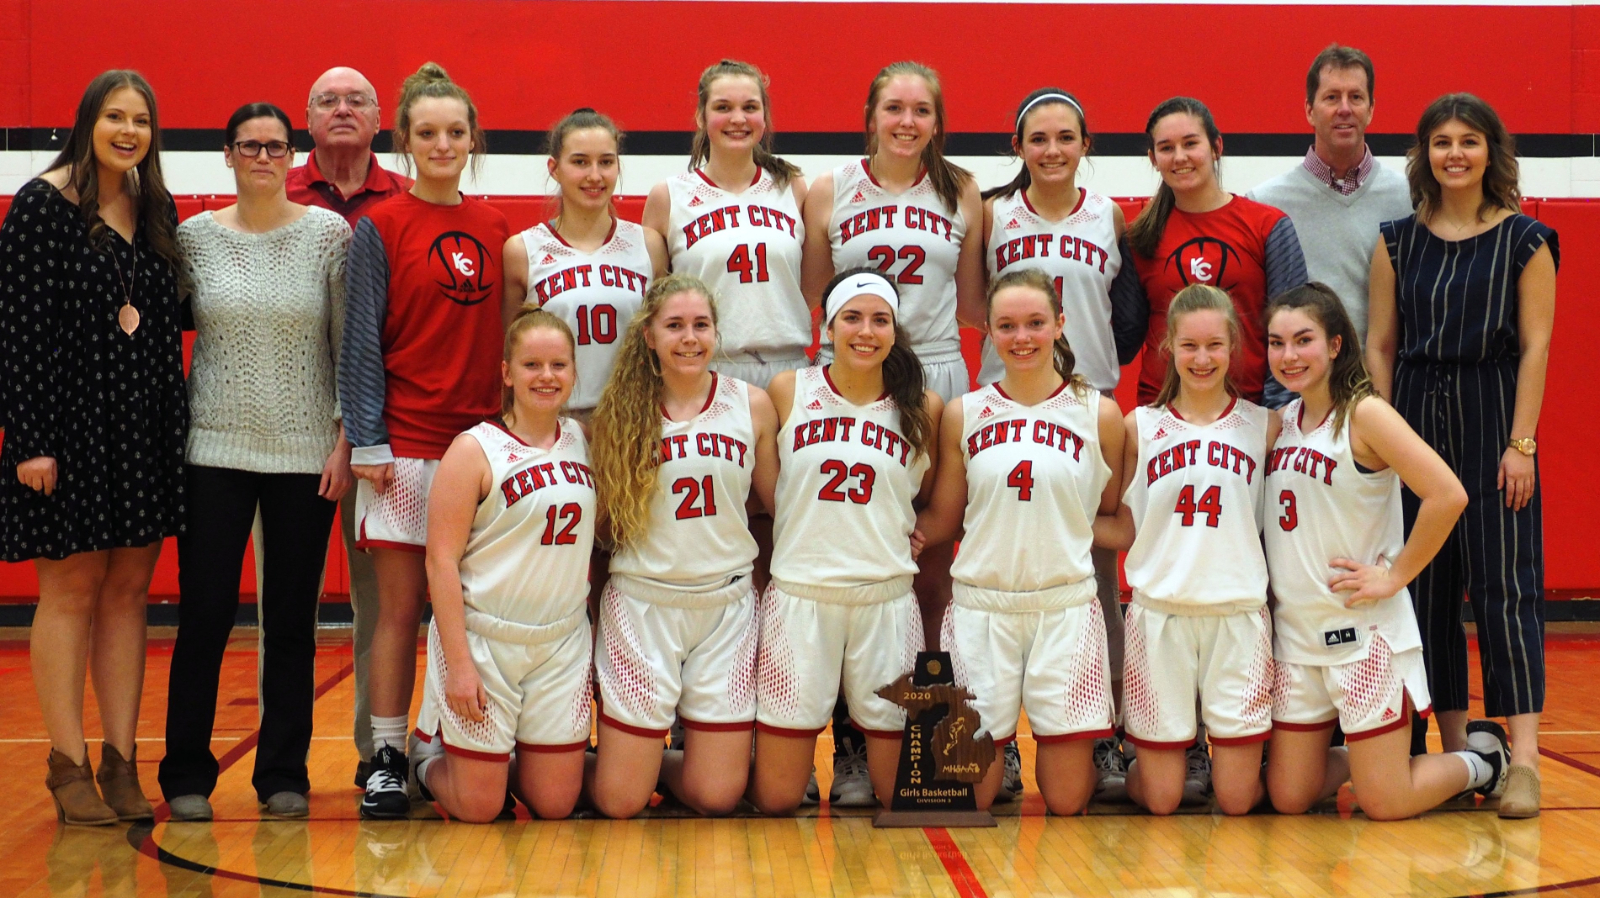 Kent City Girls Basketball Tops in Class C, Boys finish 5th for Academic All-State